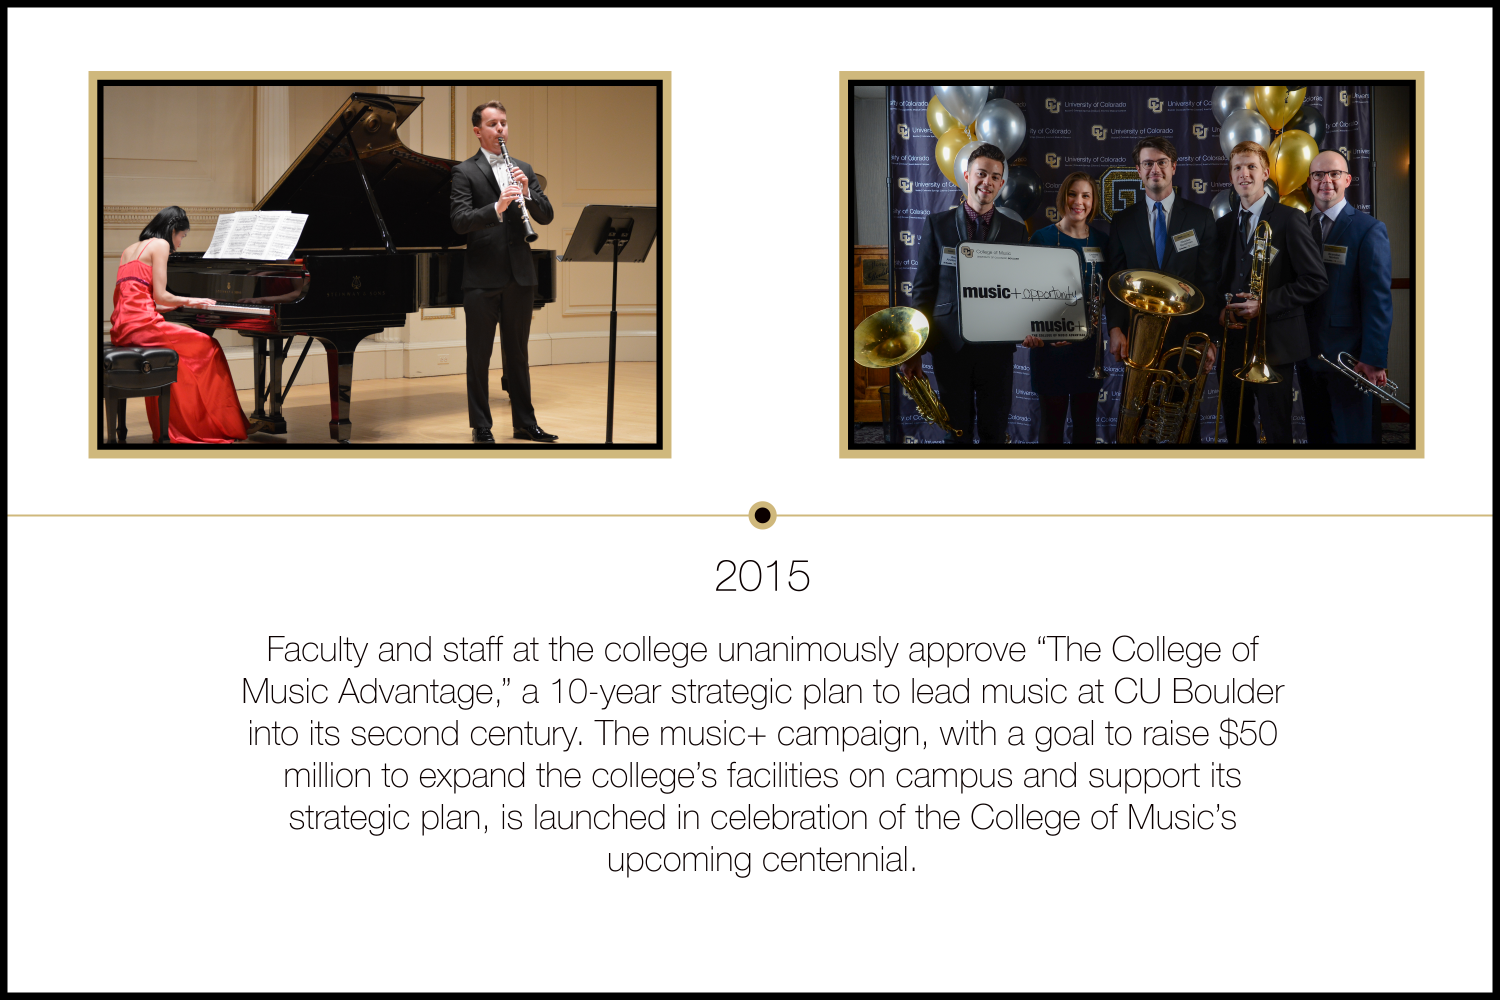 carnegie performance and music+ 2015